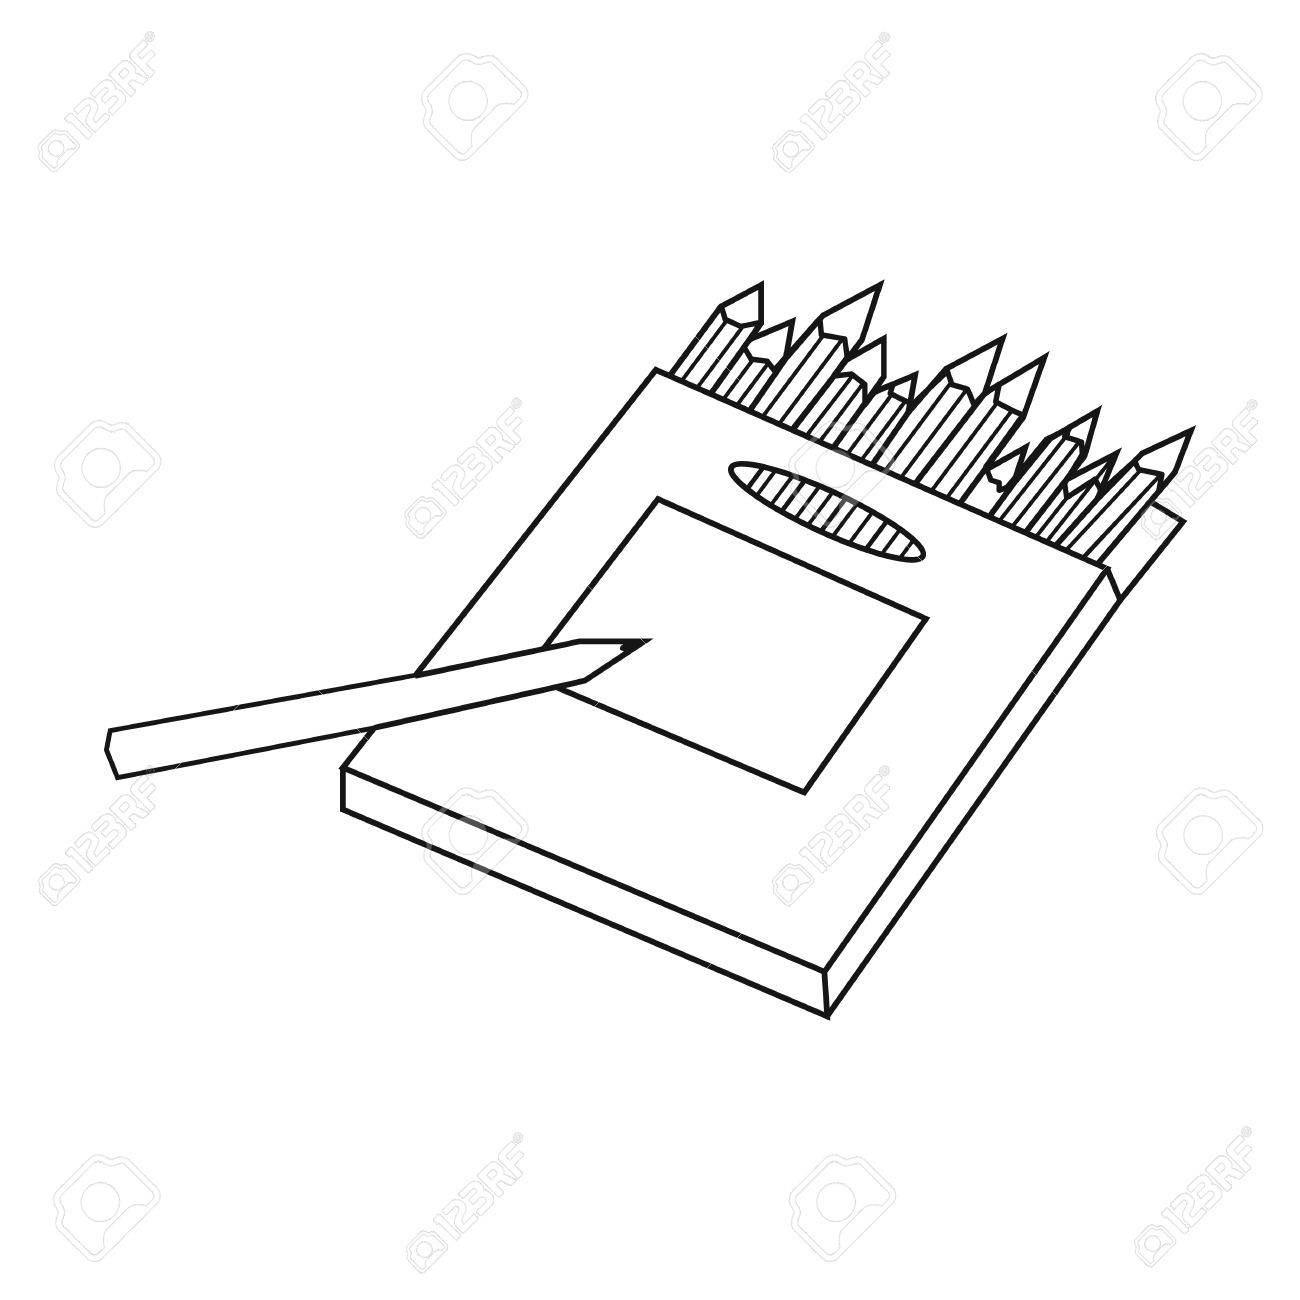 Colored pencils for drawing in box icon in outline style isolated on white background artist